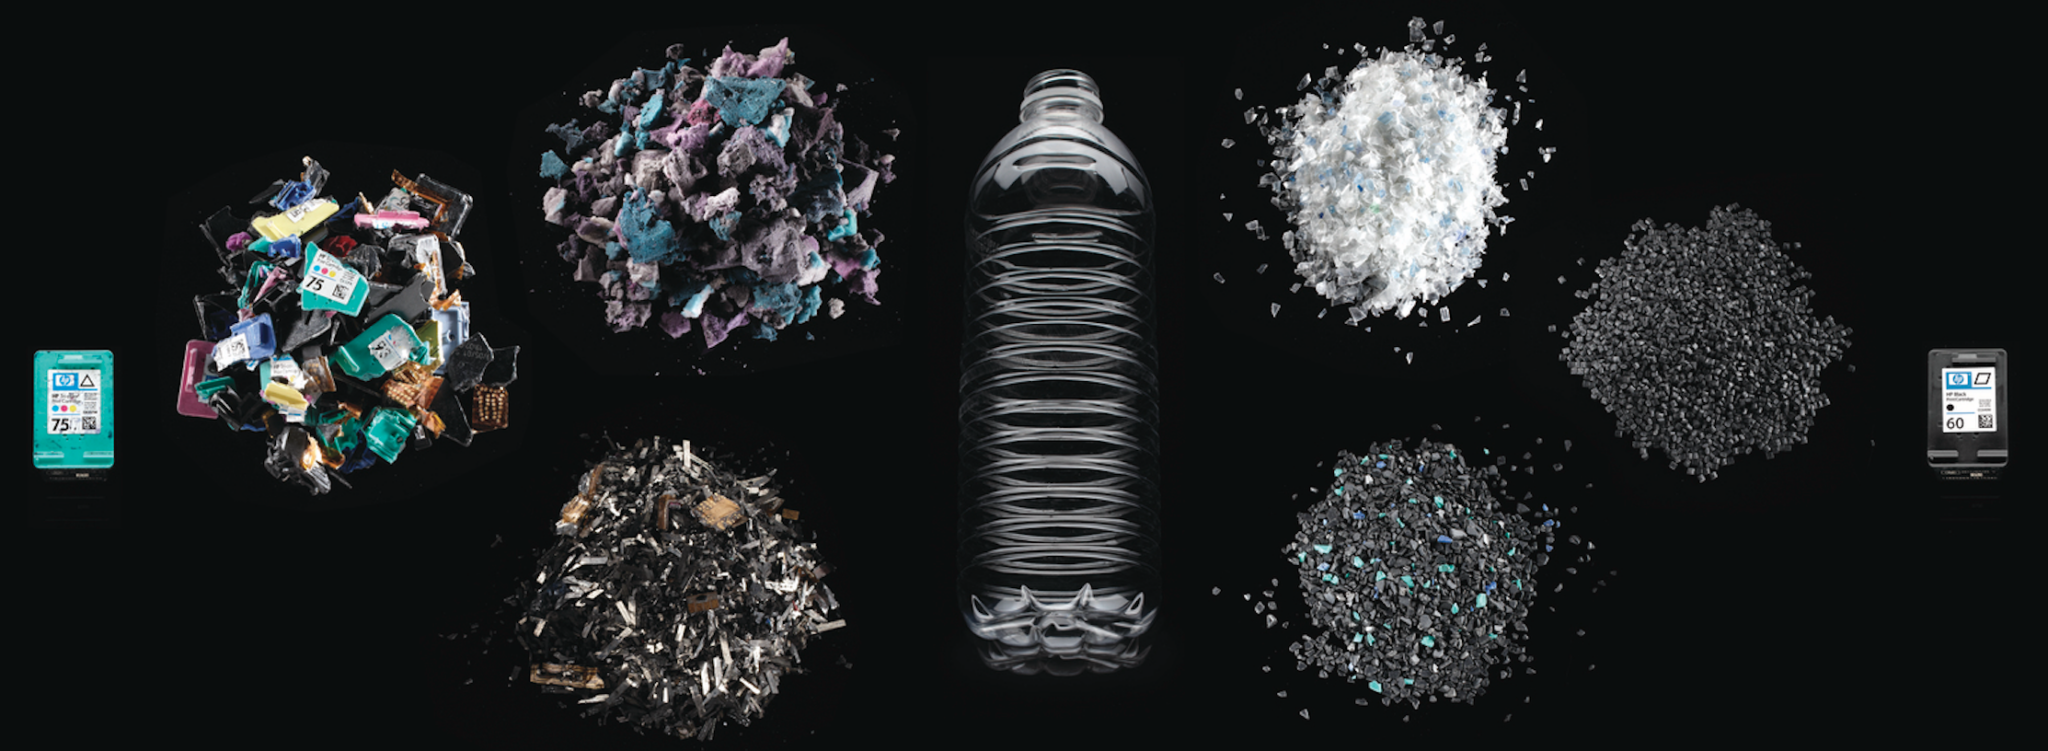 Ink cartridge recycling process